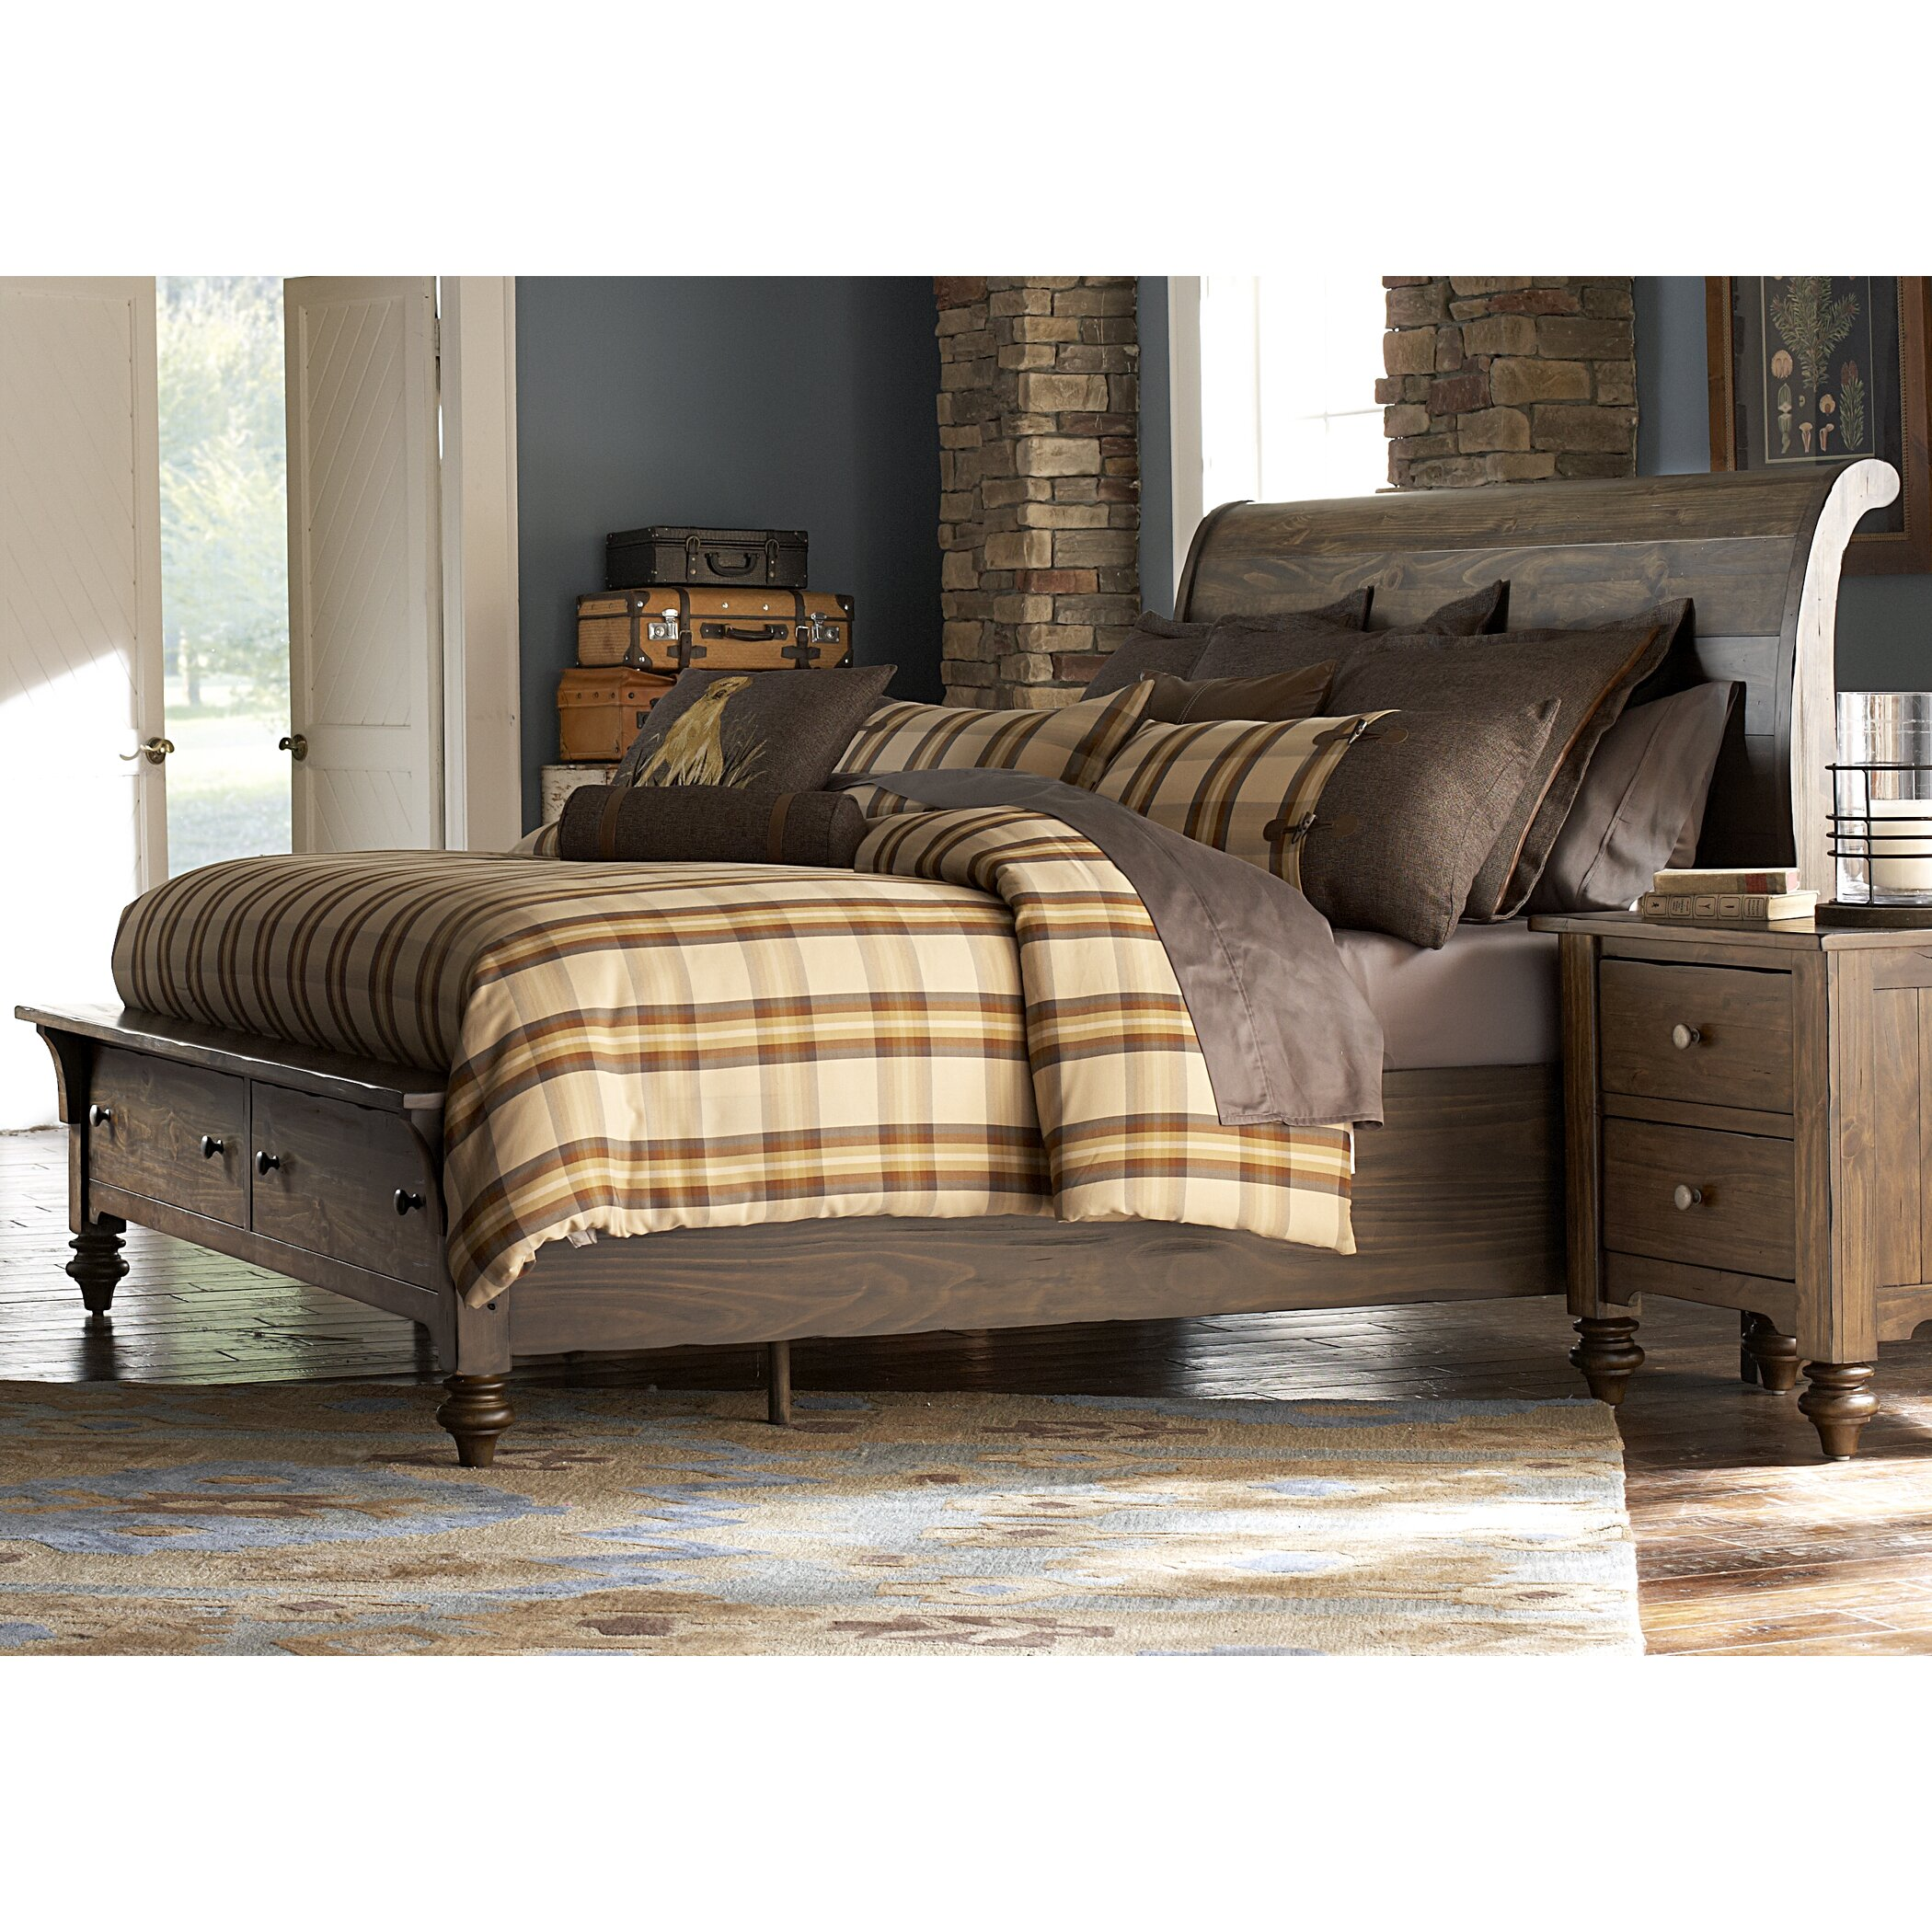 Liberty furniture solid living sleigh bed for Living bedroom furniture